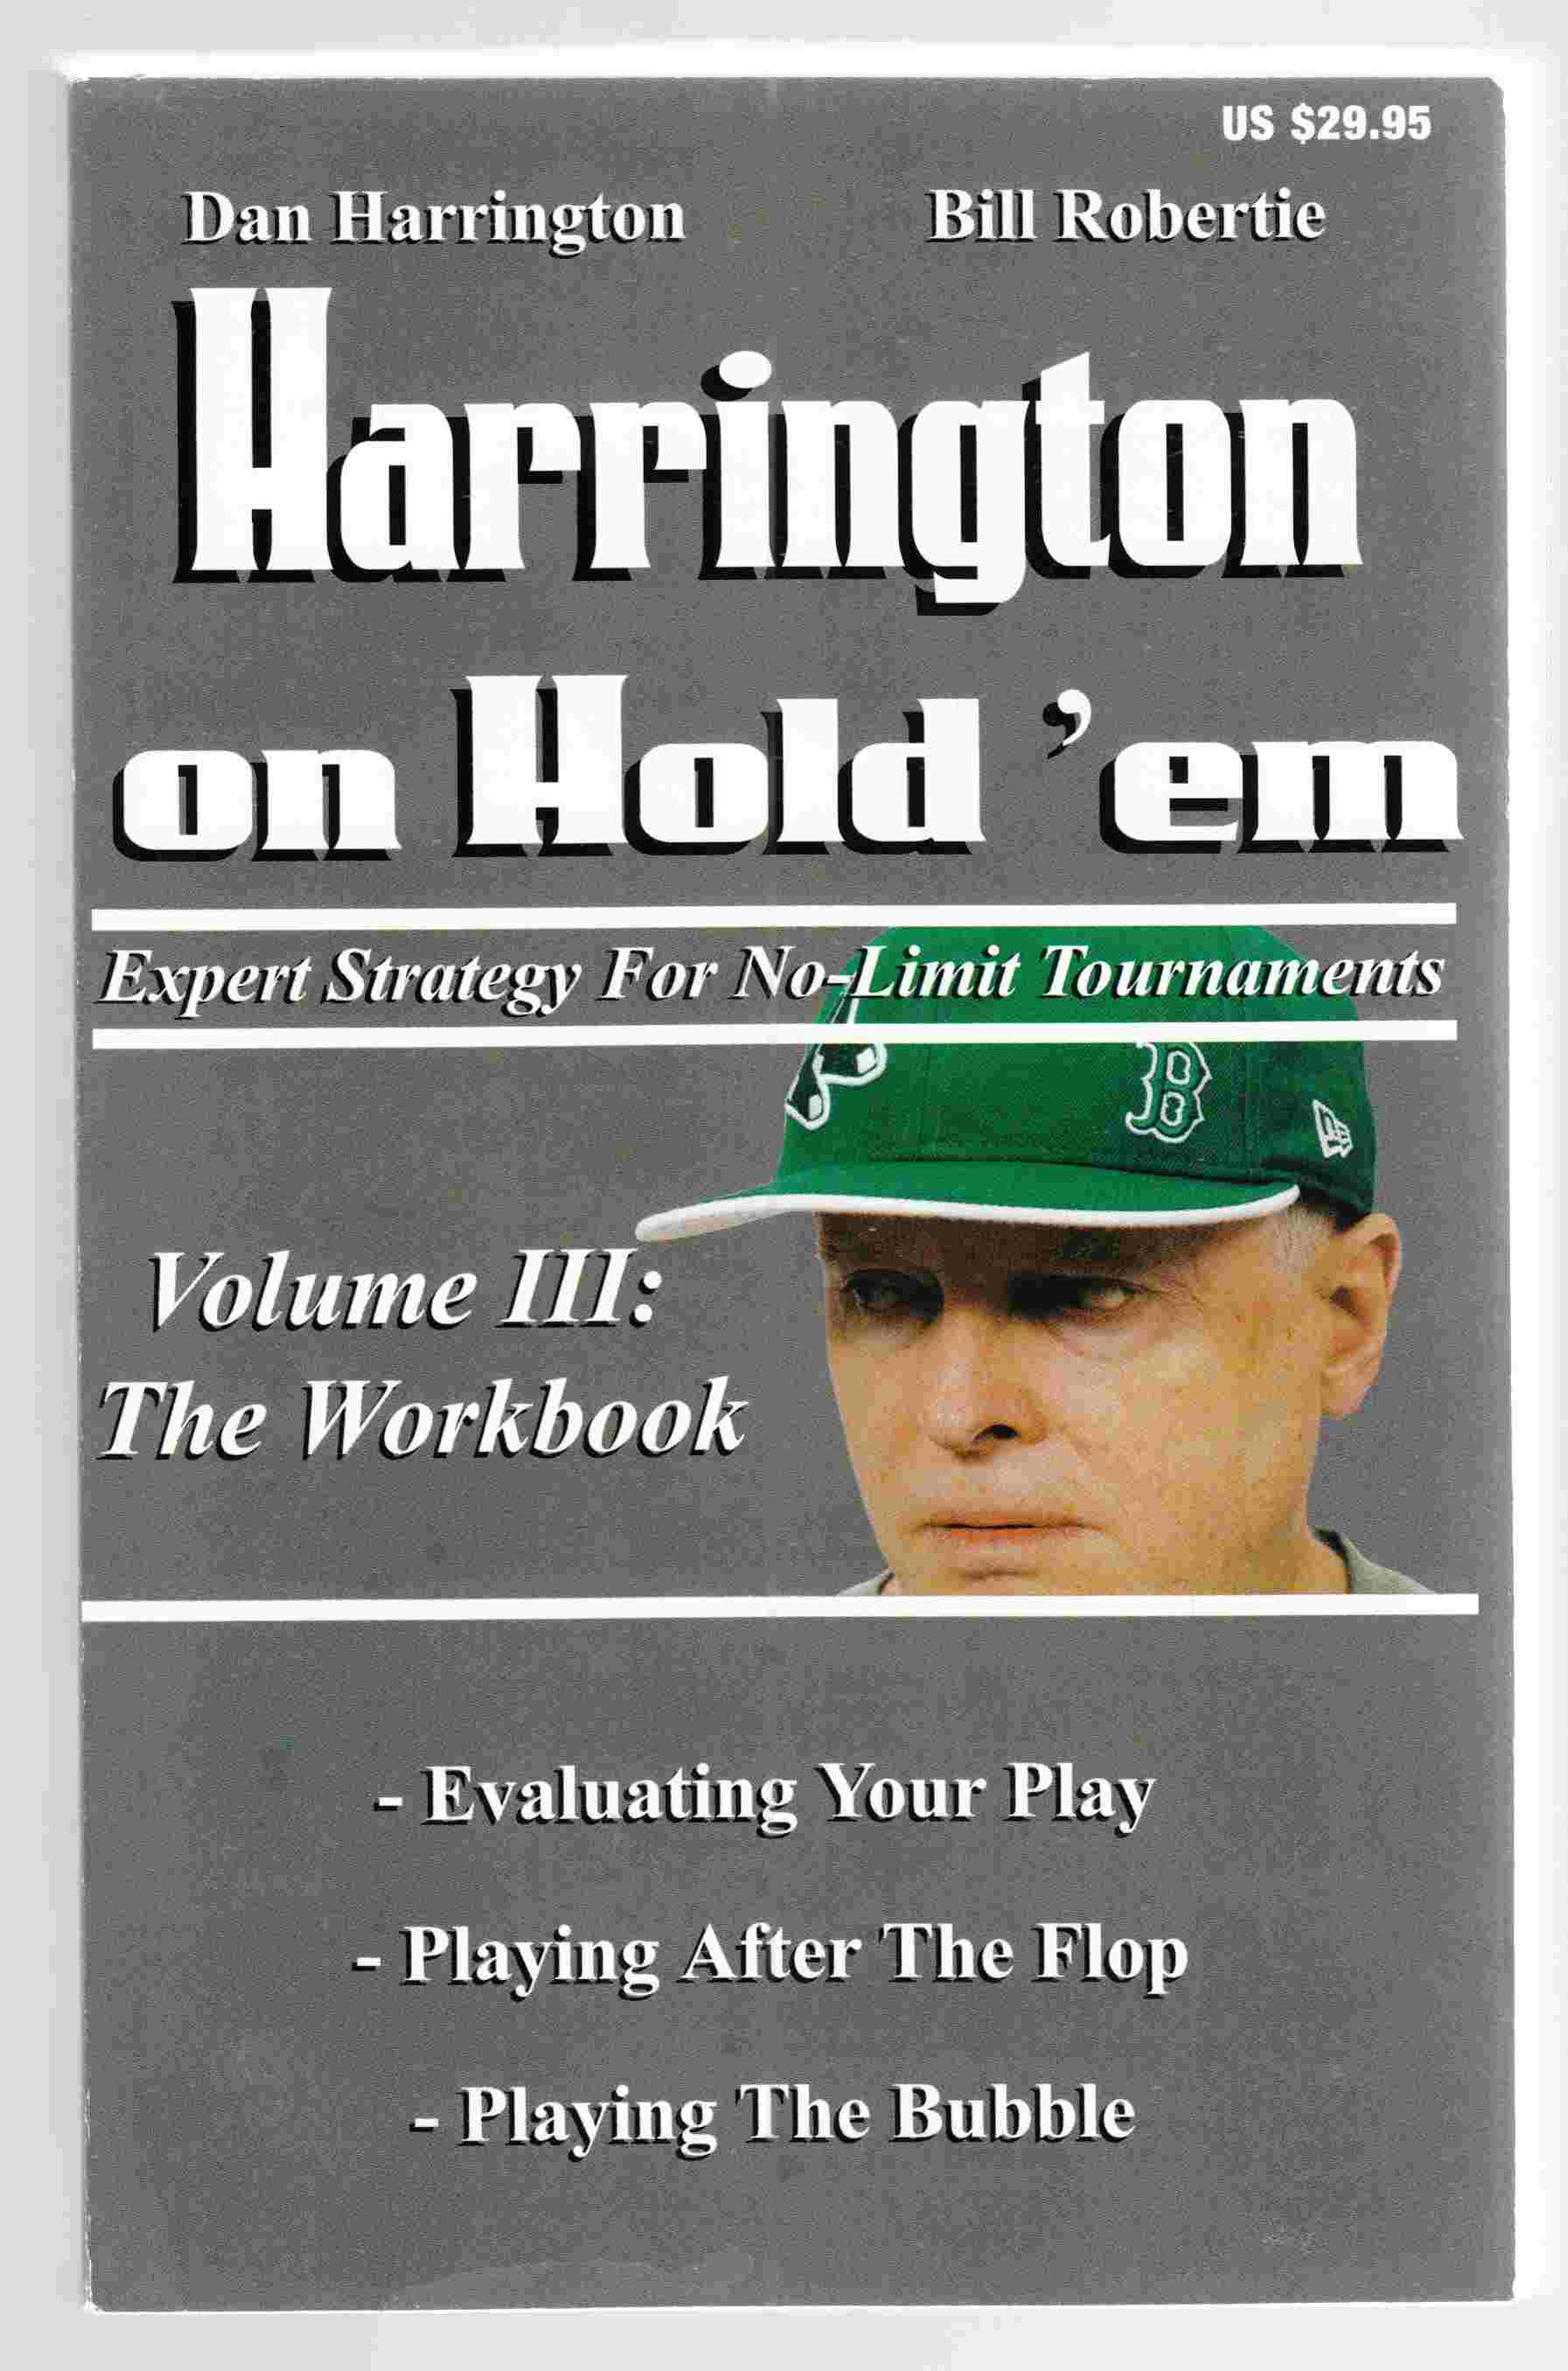 Image for Harrington on Hold 'em Expert Strategy for No Limit Tournaments, Vol. III -The Workbook